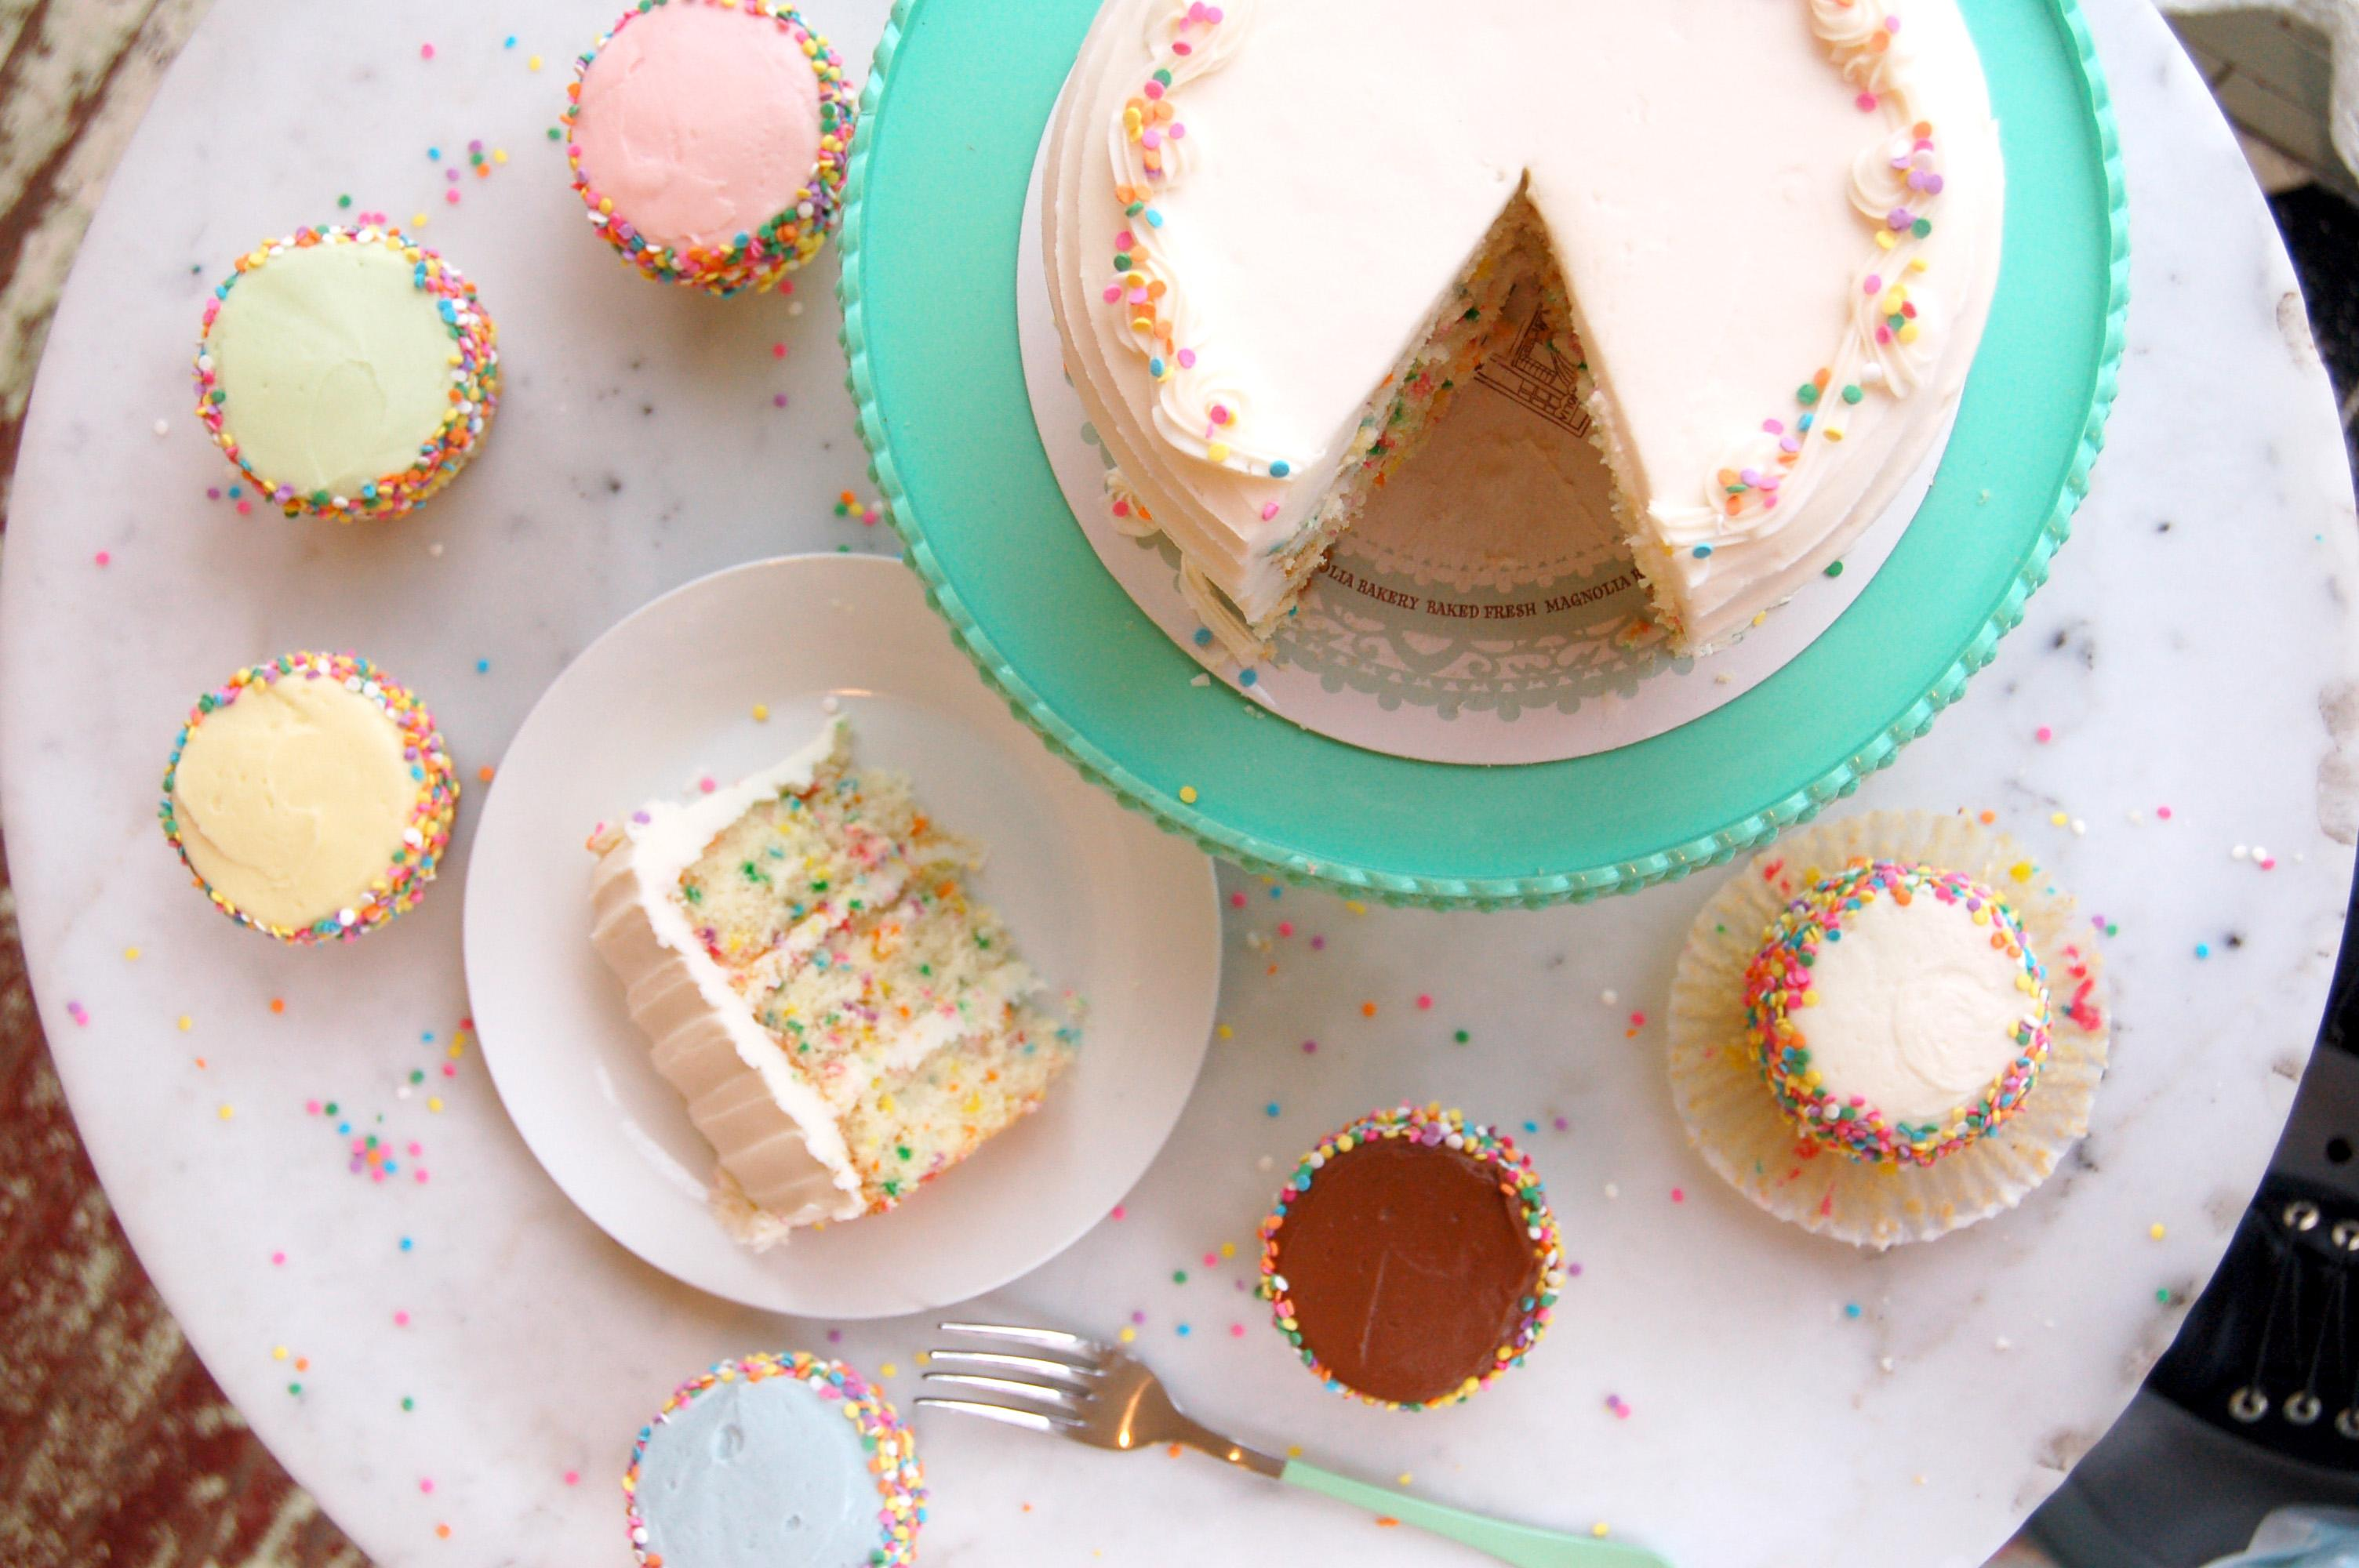 This storied New York City sweet spot became famous for its cupcakes, but there's so much more going on here. (Image:  Courtesy Magnolia Bakery)